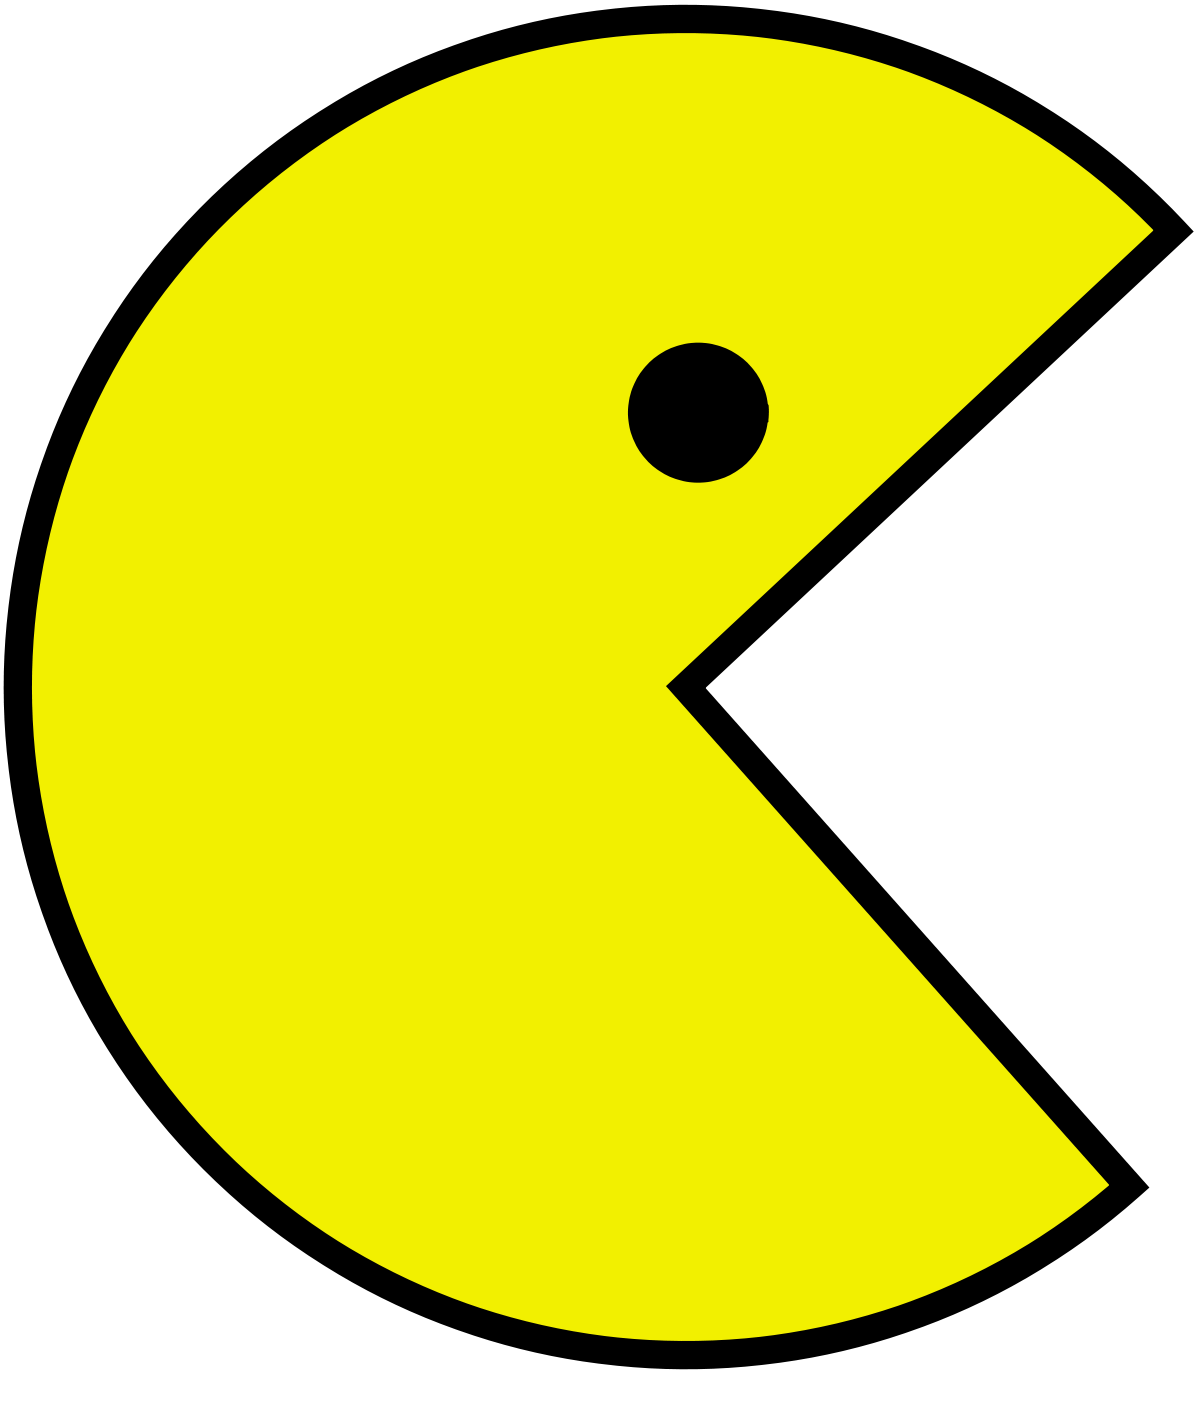 pacman, pac man simple english wikipedia the encyclopedia #25746